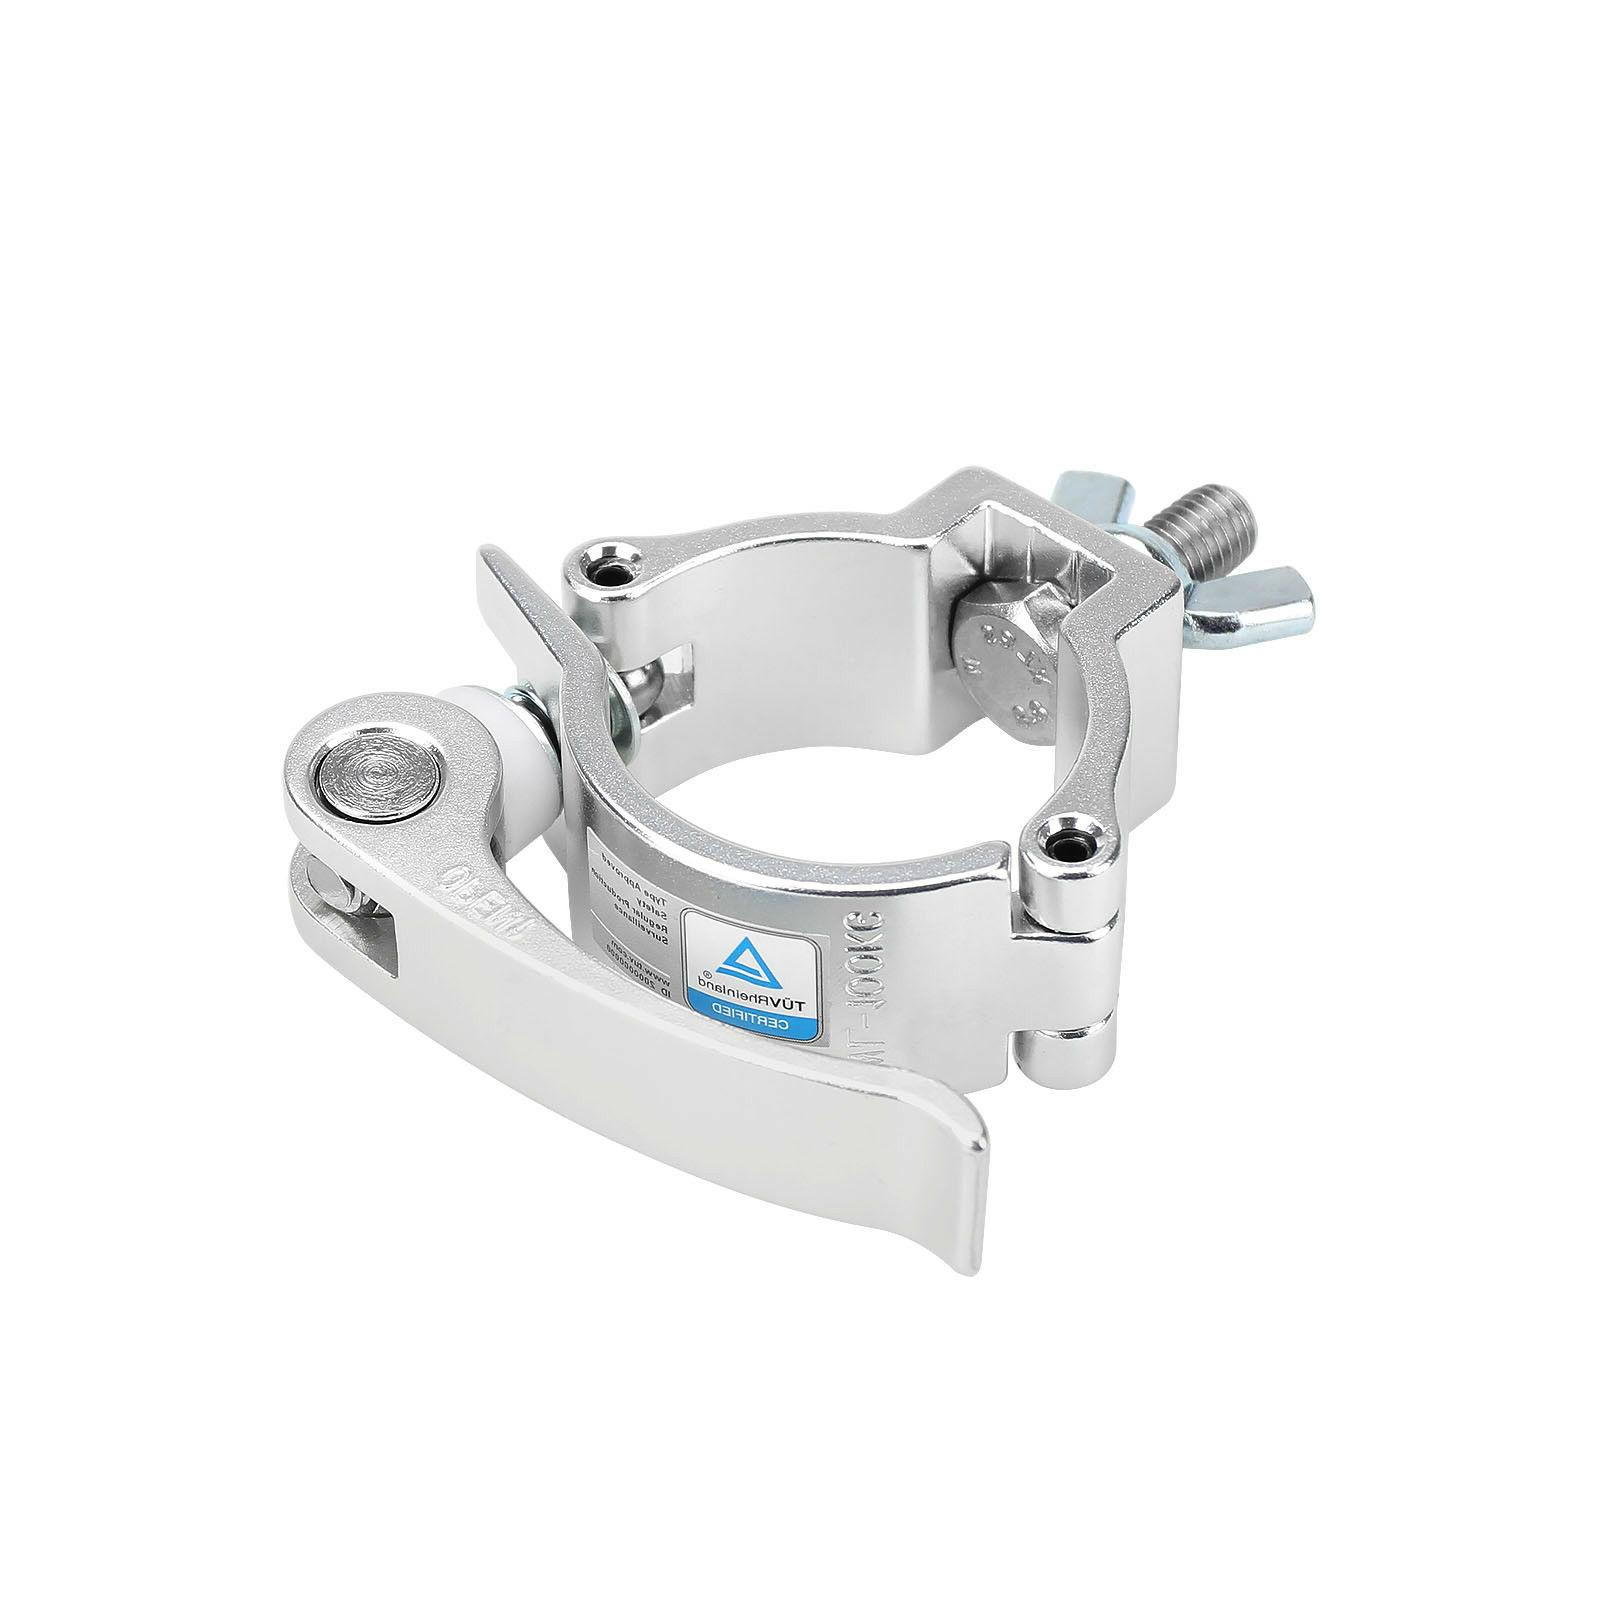 10x Quick Release Inch Clamp 220